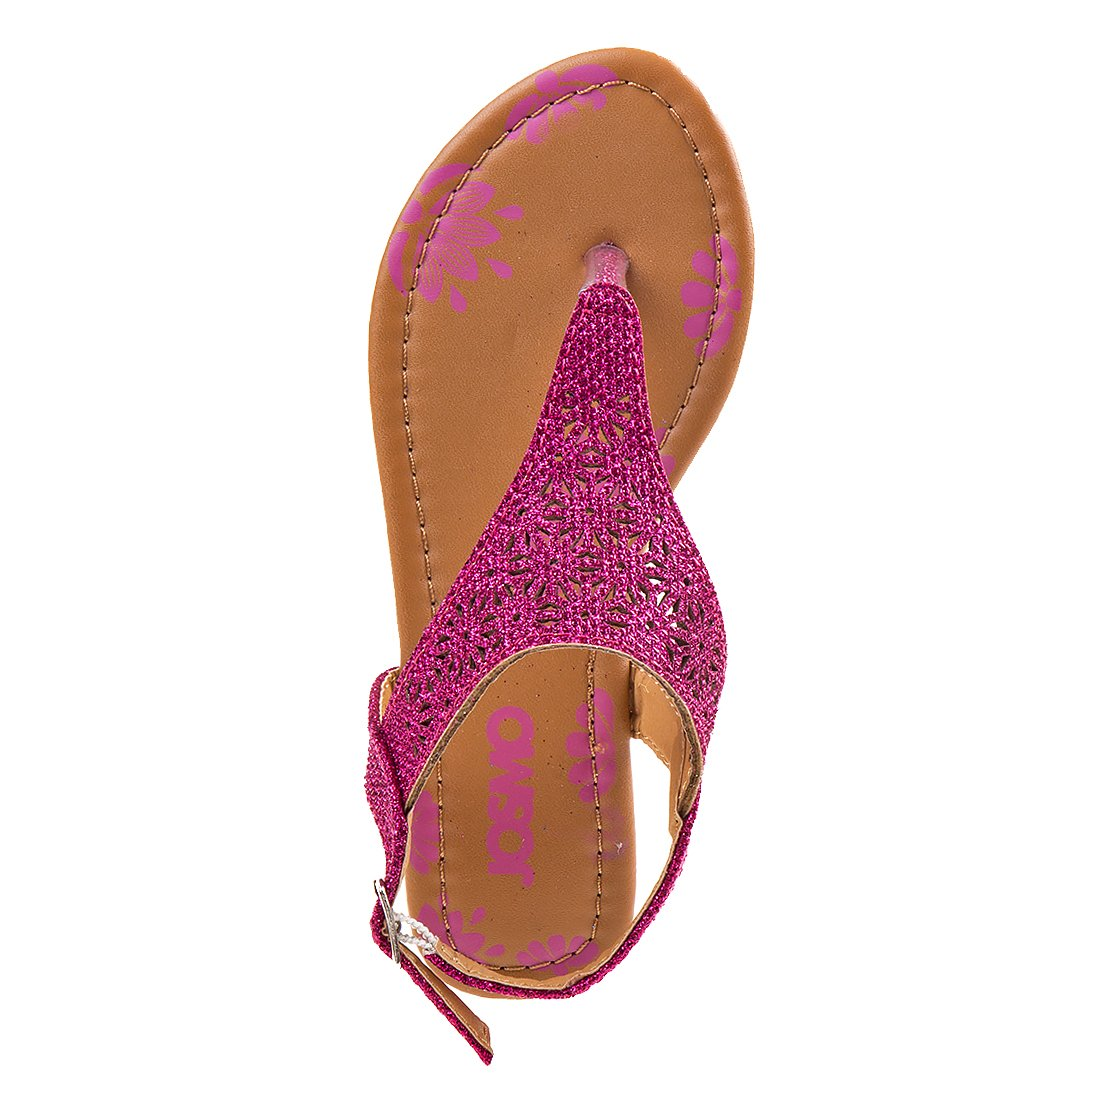 Josmo Girl's T-Strap Glitter Thong Sandals, Pink, 3 M US Big Kid' by Josmo (Image #3)